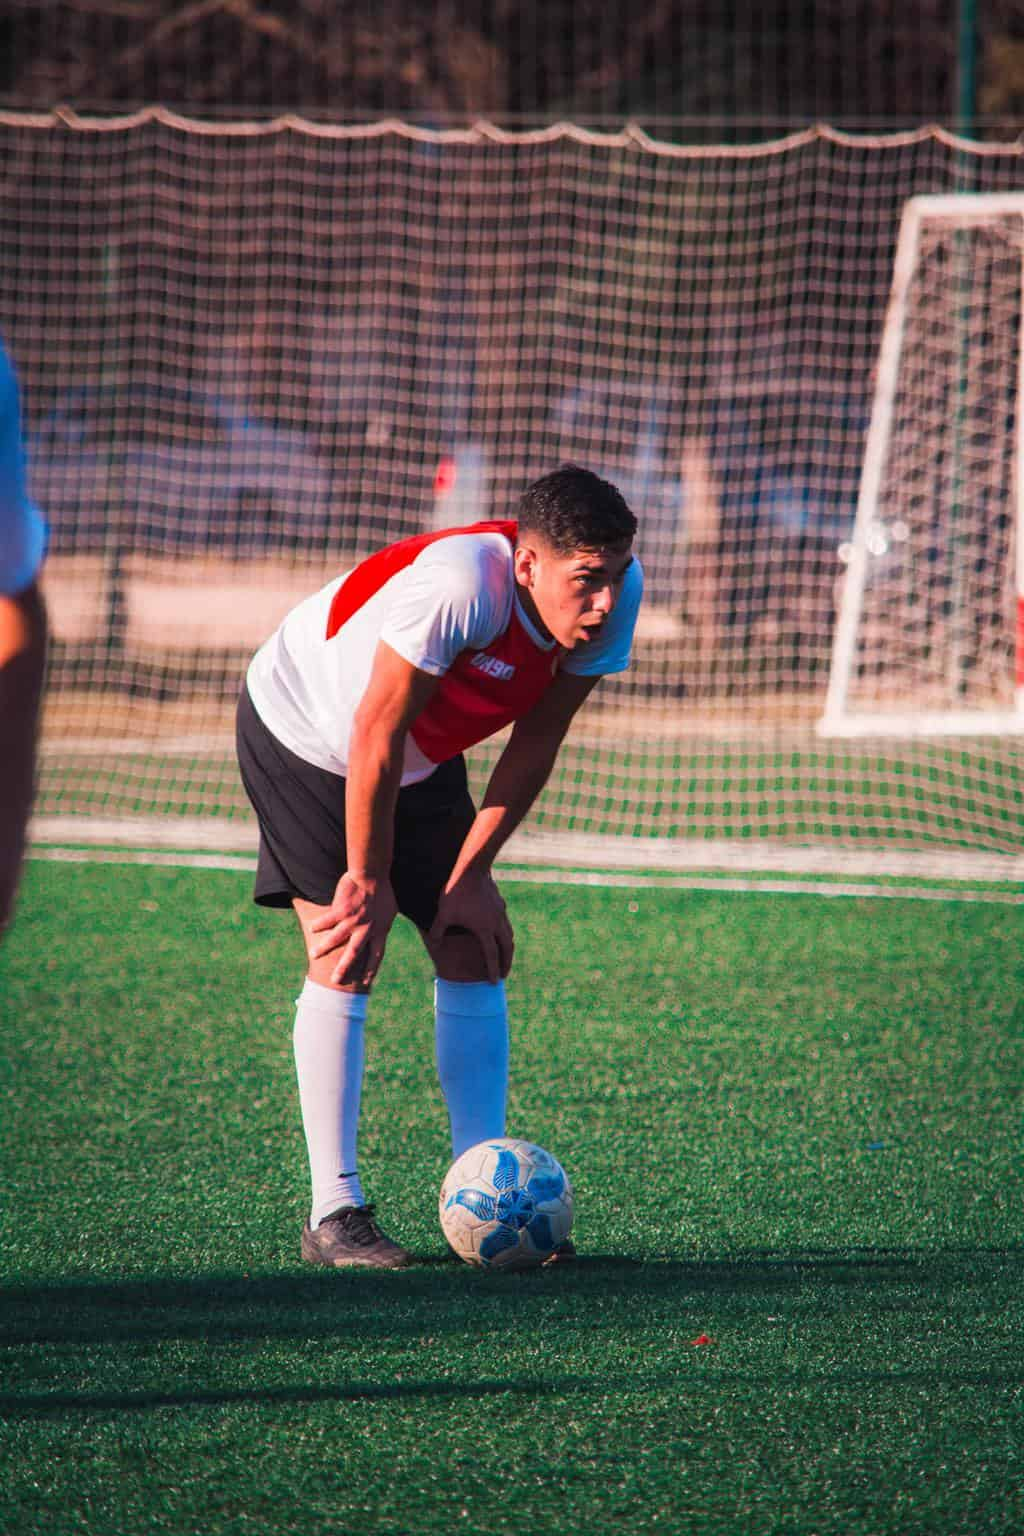 Soccer player resting his hands on his knees